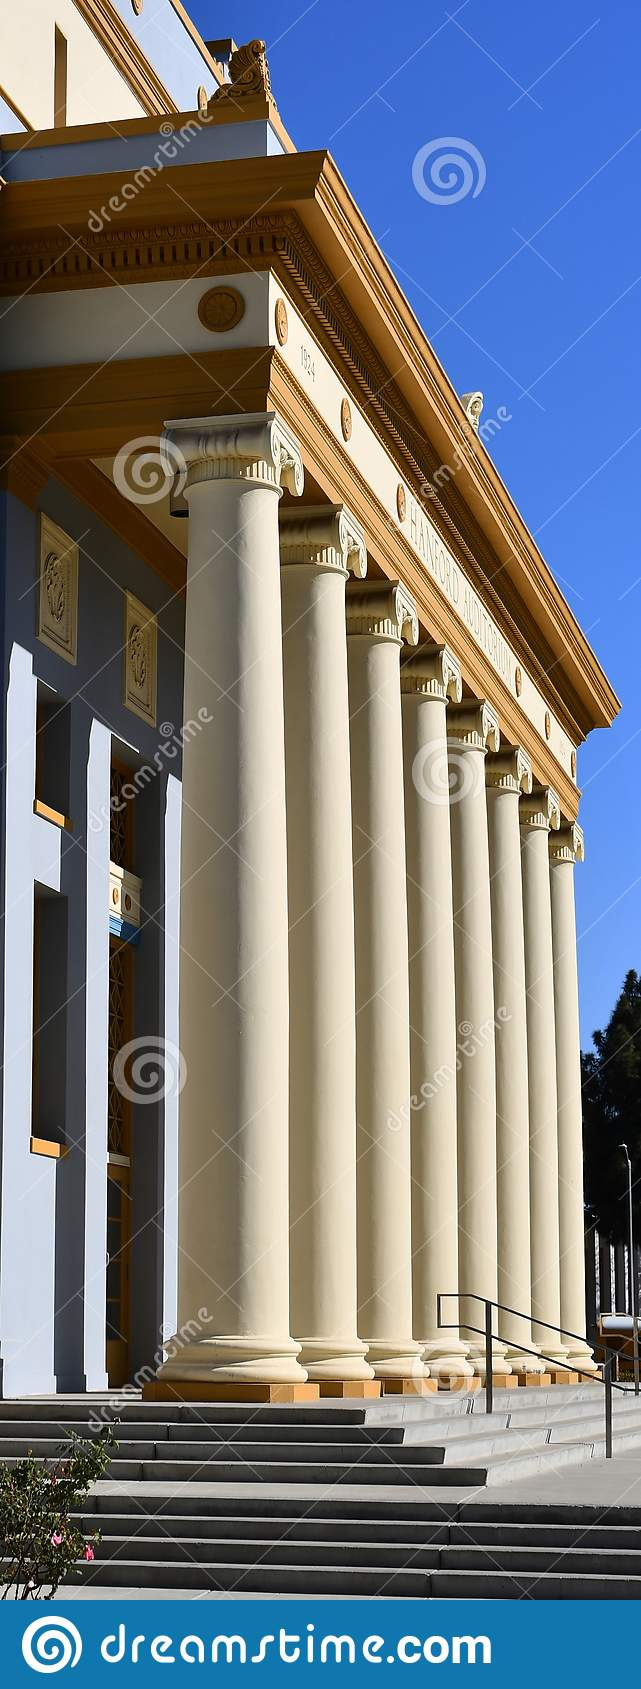 A building with corinthian columns in a row colonnade The neoclassical building style resembles a law court  courthouse,